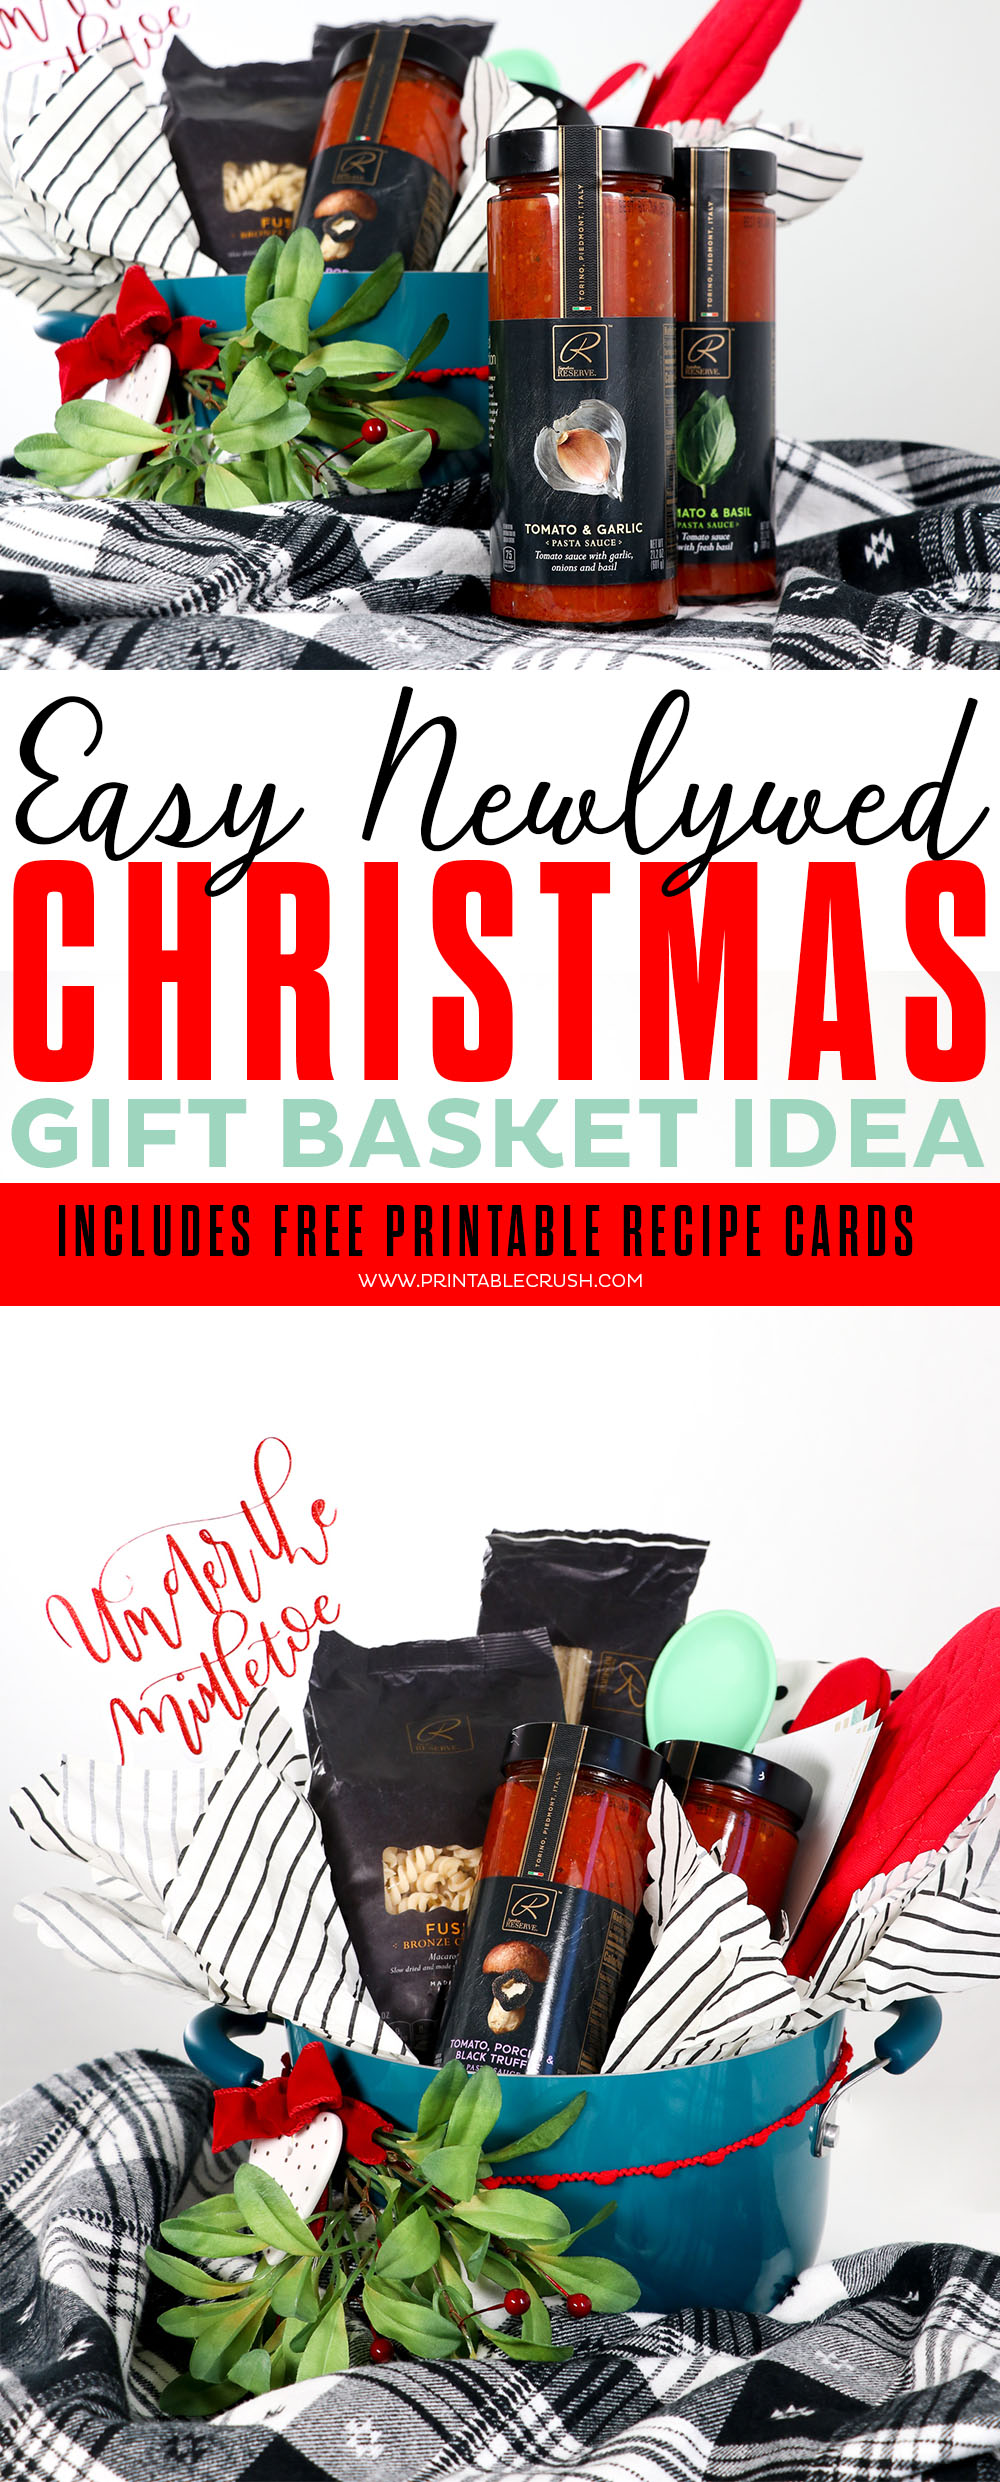 Get the newlyweds something they actually NEED this Christmas with this pretty Newlywed Christmas Gift Basket Idea. Includes FREE printable recipe cards!